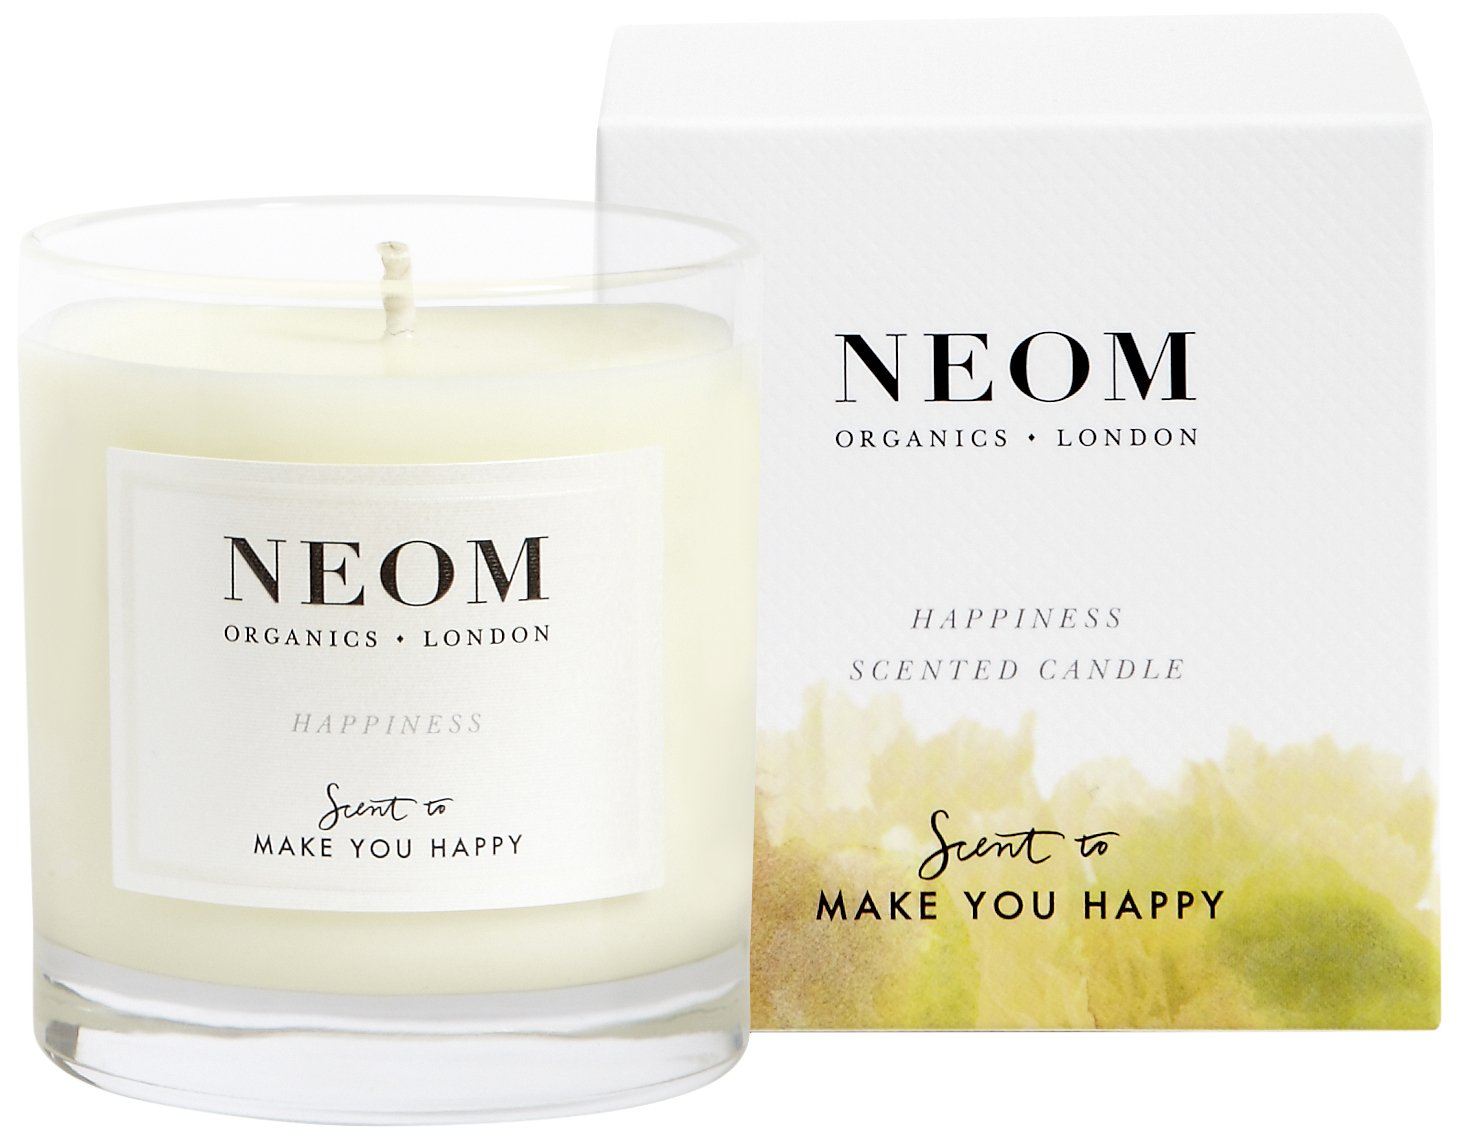 Neom Organics London Happiness Scented Candle 1101175